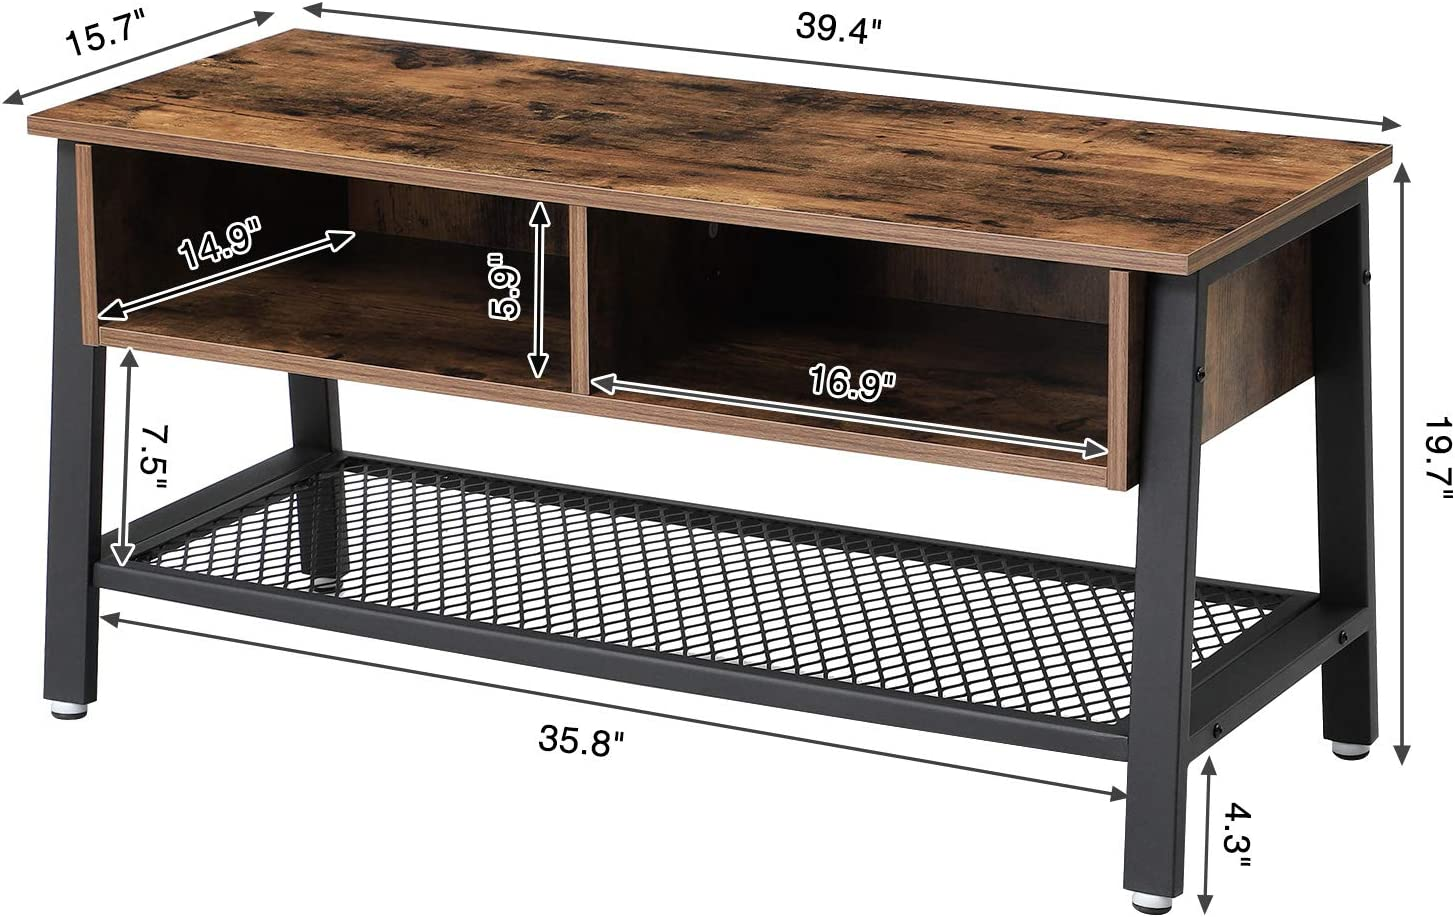 VASAGLE Vintage TV Stand, TV Cabinet with Net Storage Shelf, Console with 2 Storage Compartments, Easy Assembly ULTV92X: Furniture & Decor